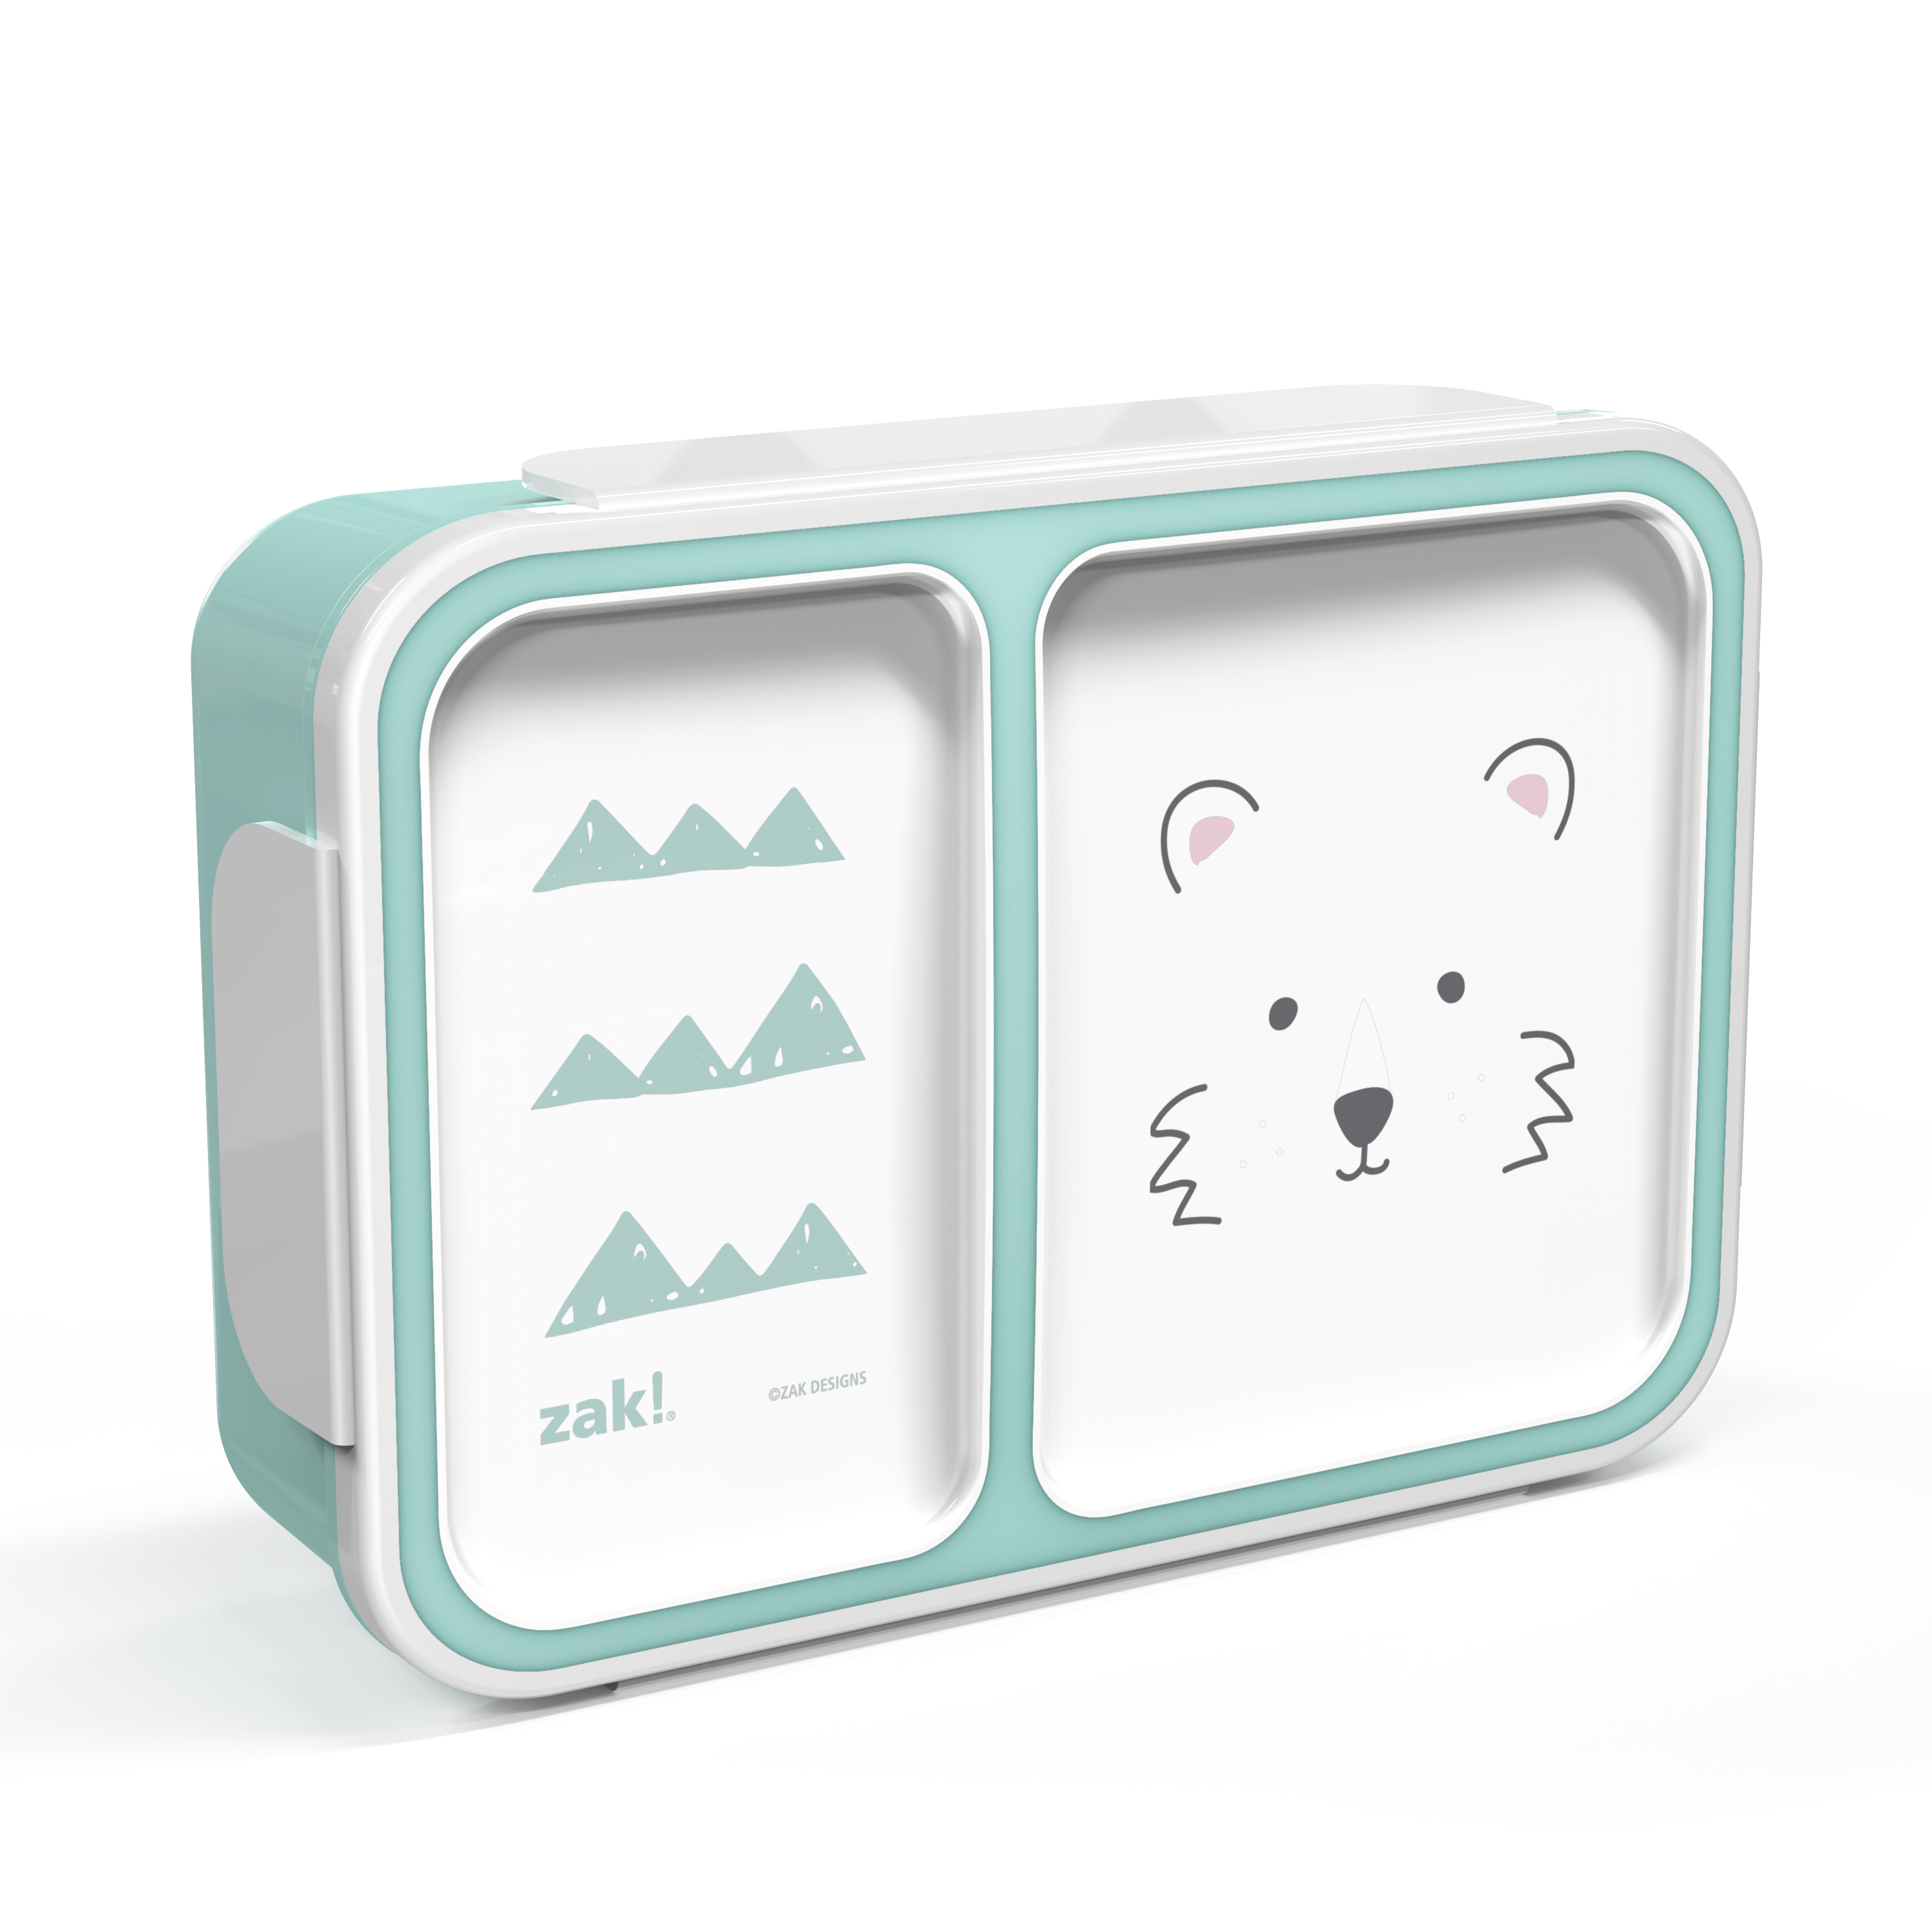 Soft Lines Dual-compartment Reusable Bento Box, Teddy Bears slideshow image 3